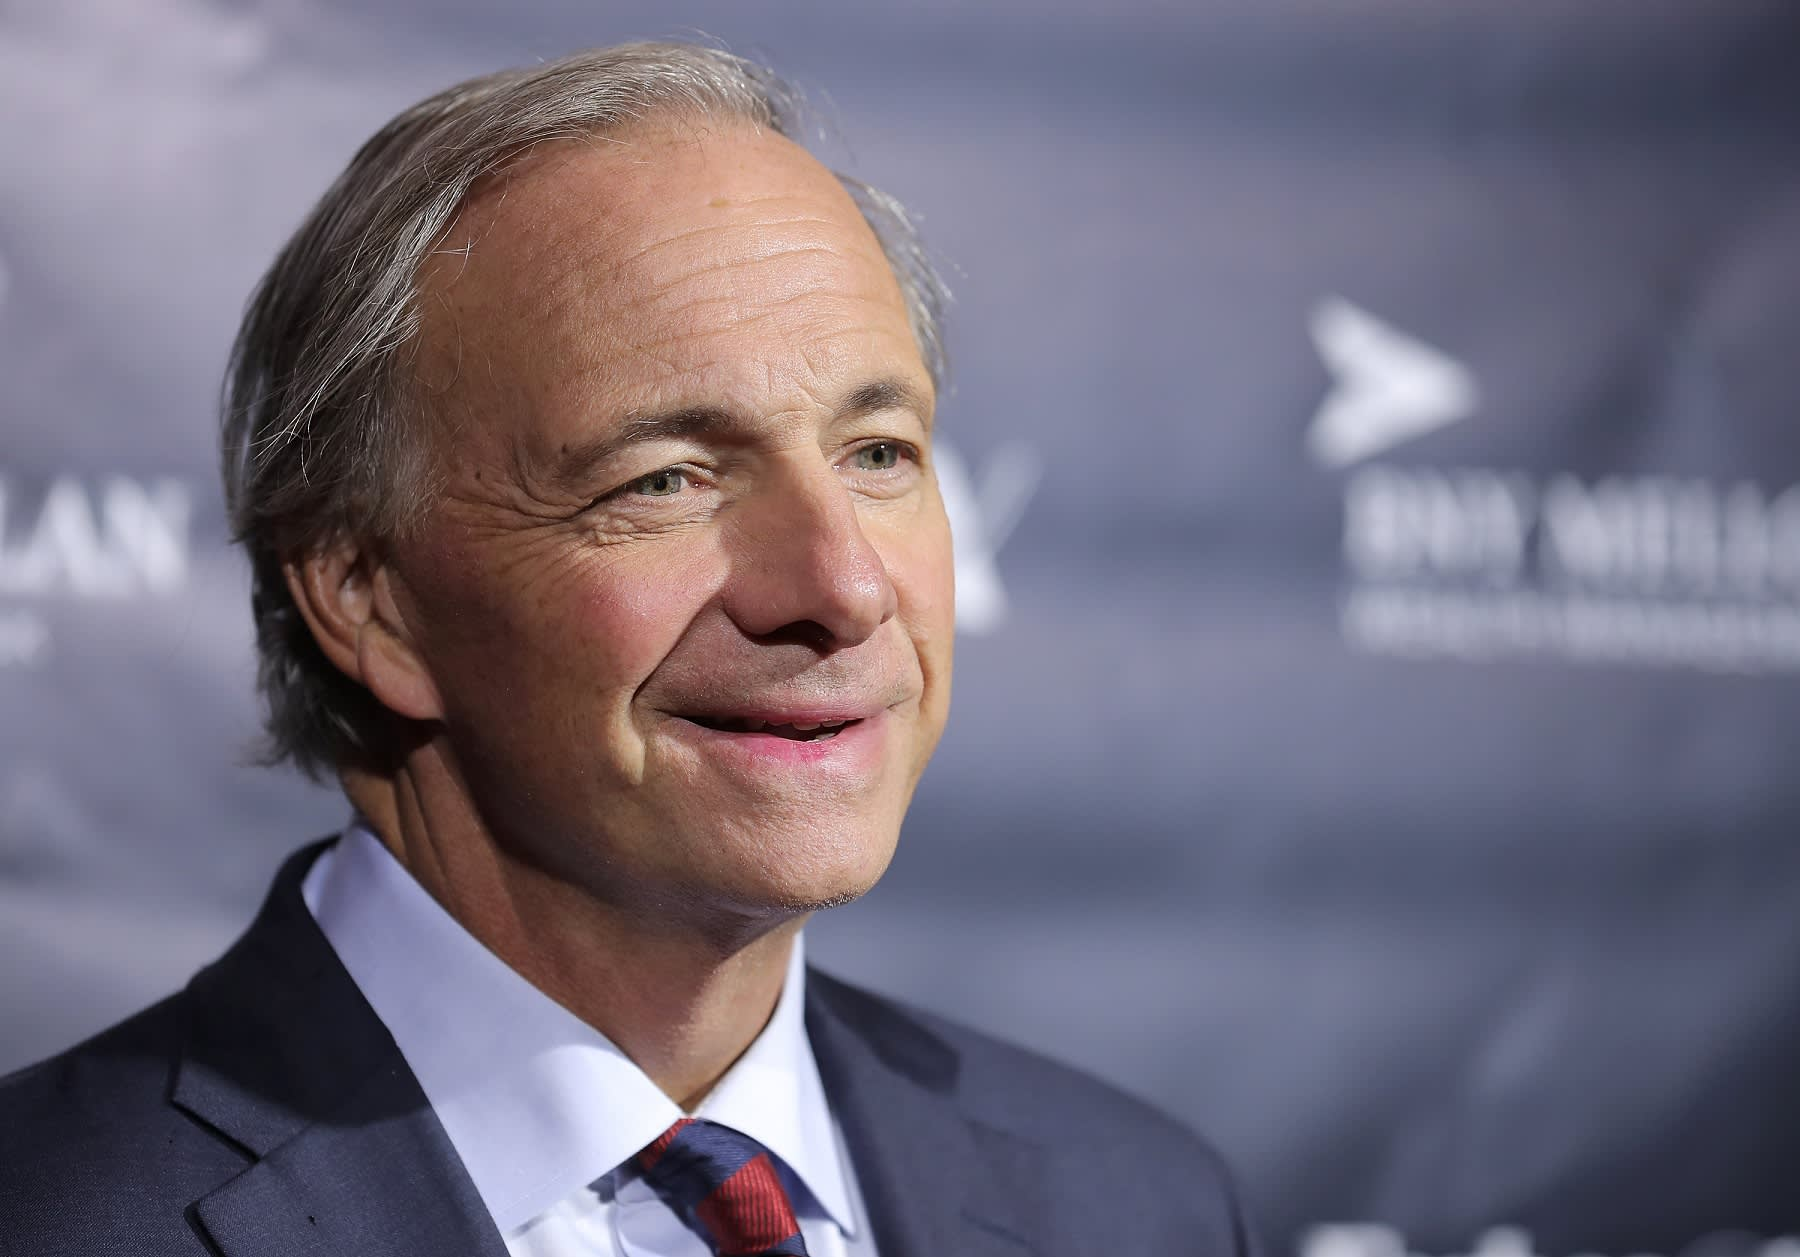 Hedge fund billionaire Ray Dalio: Meditation is 'the single most important reason' for my success